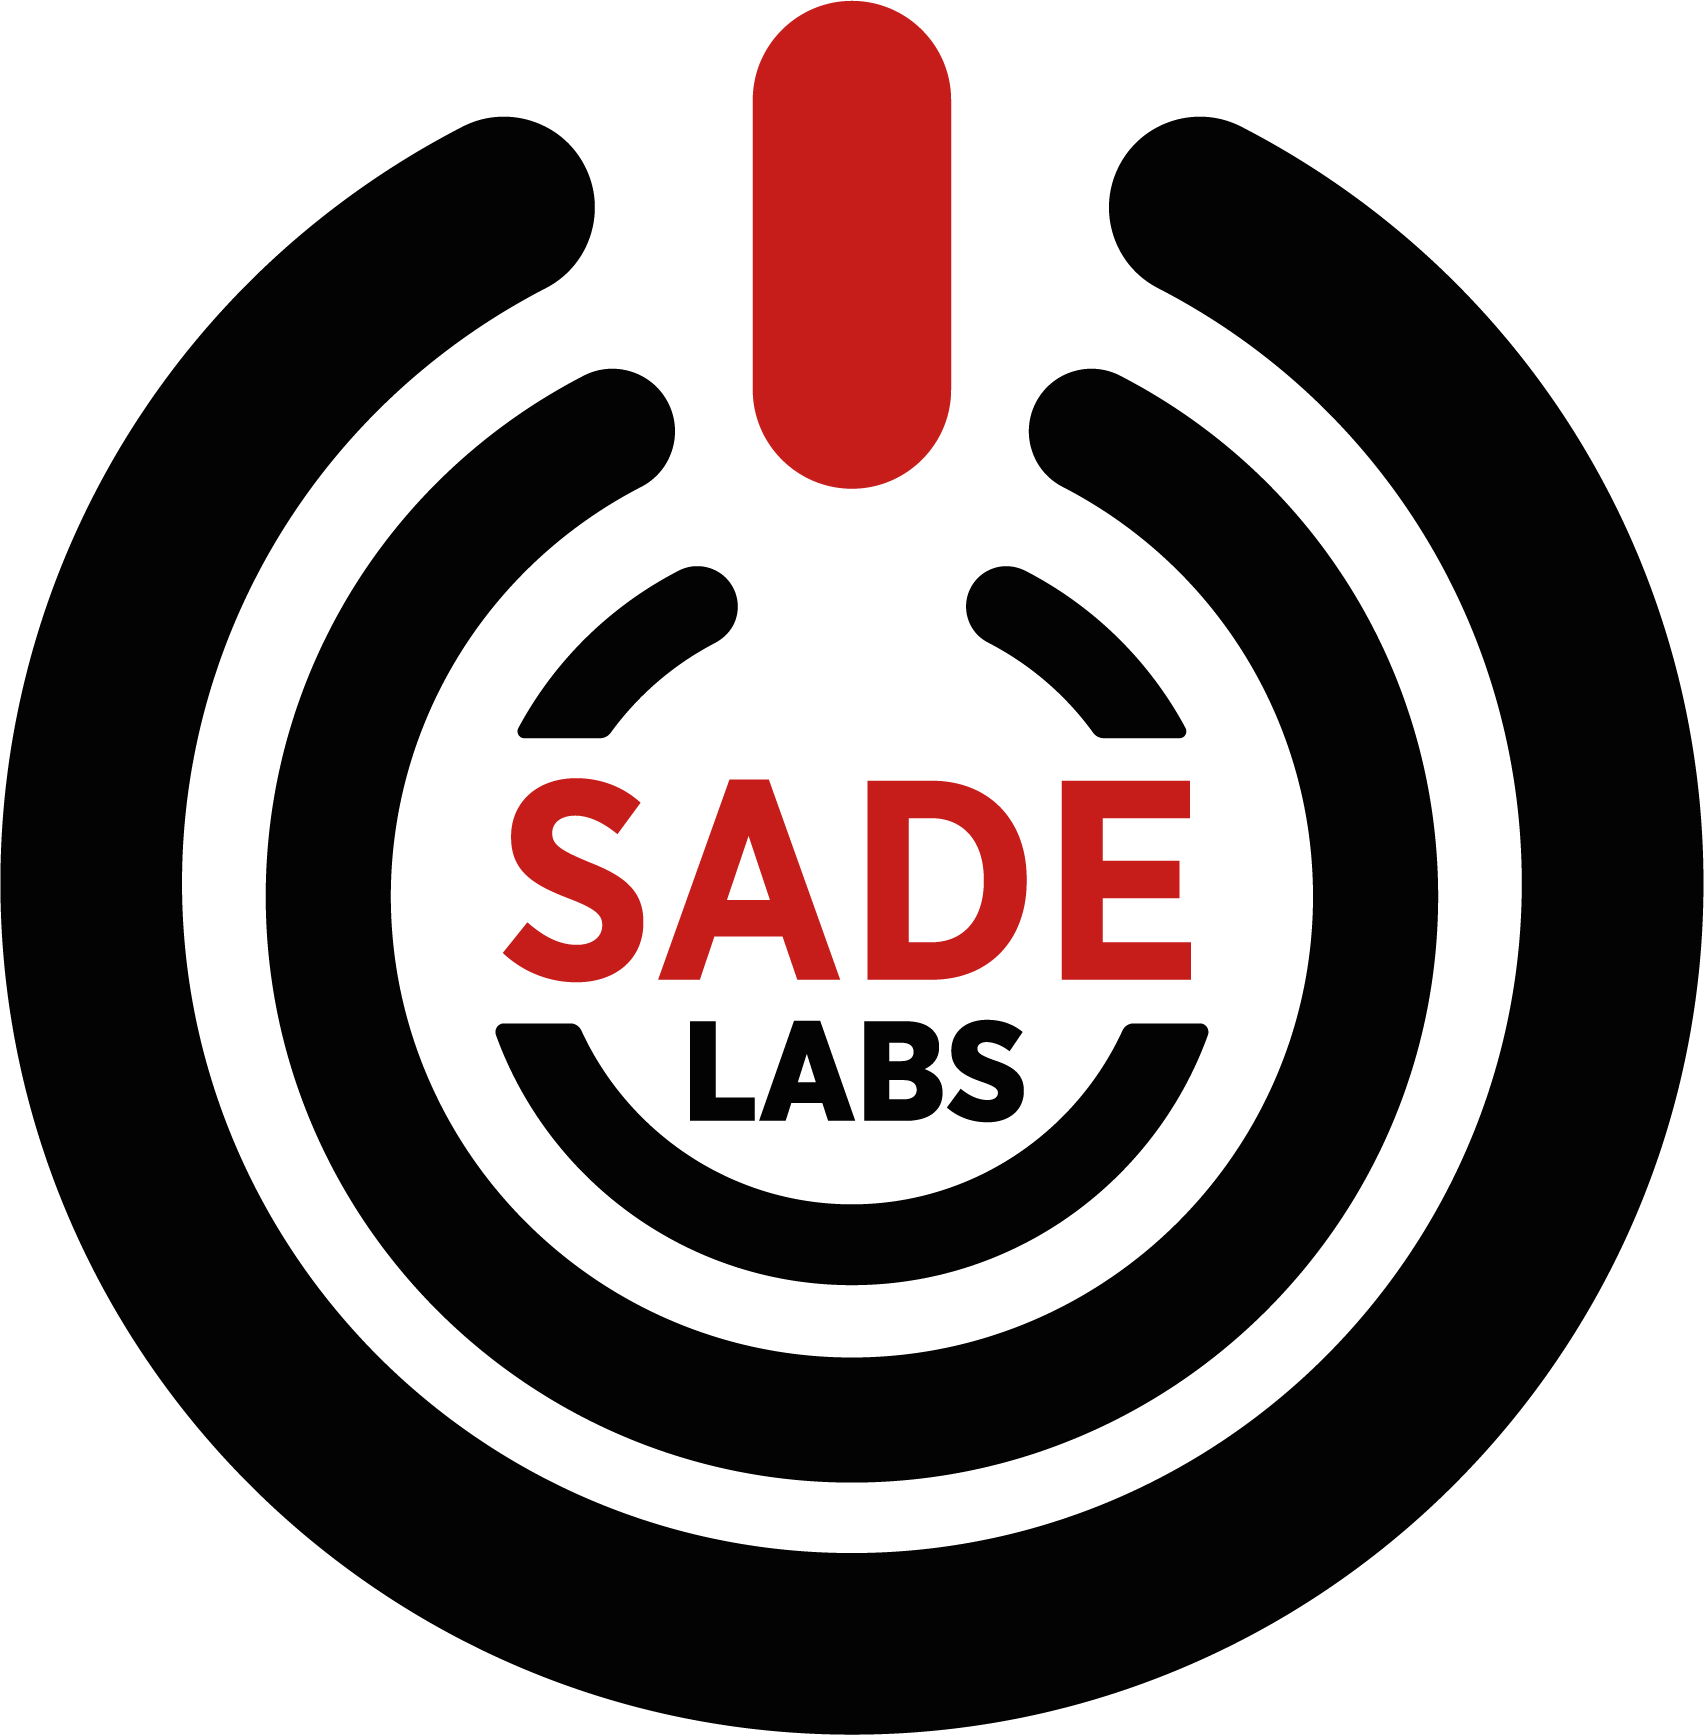 sadelabs alternatif logo